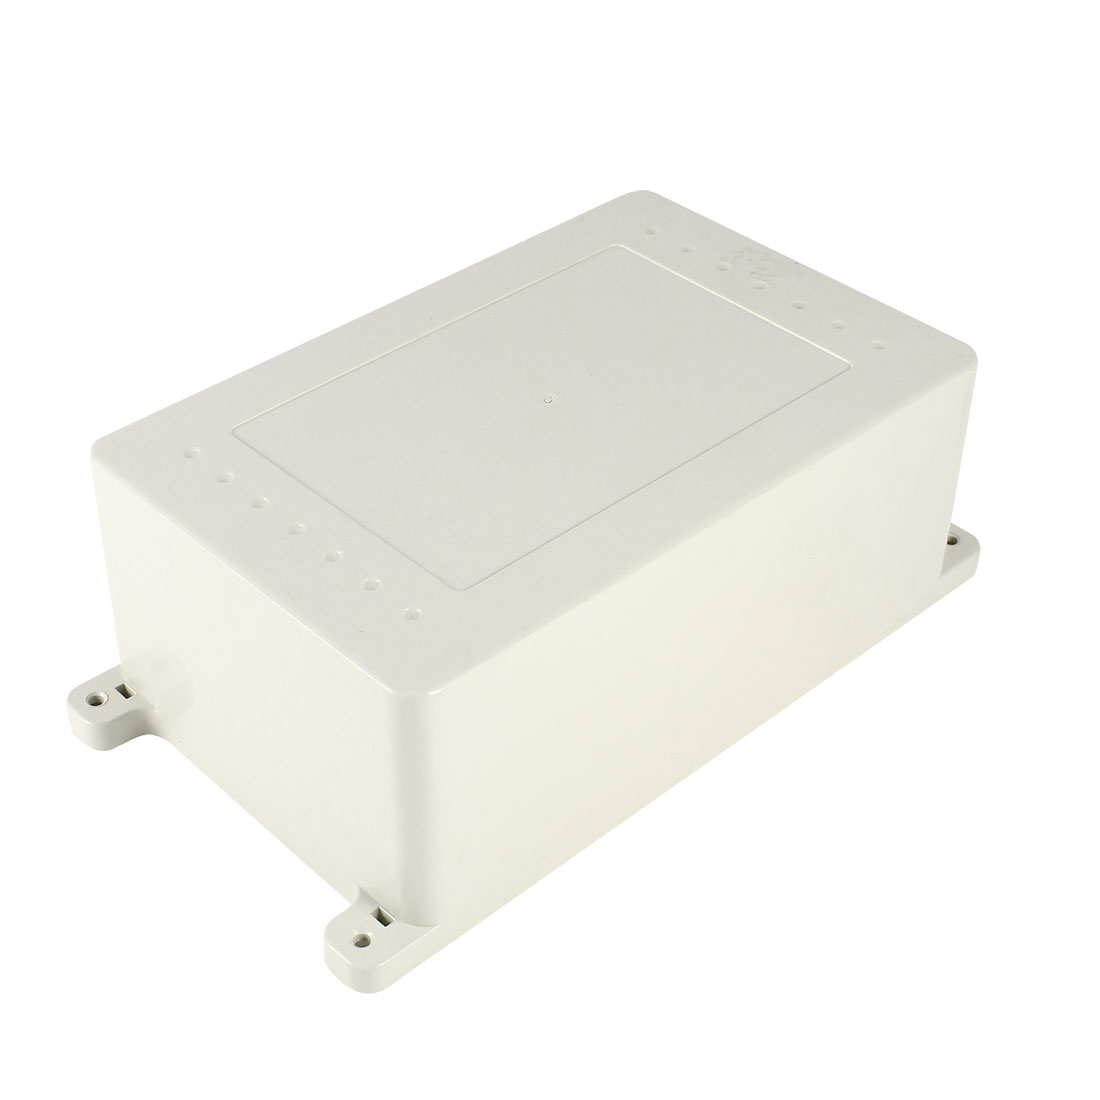 196mmx125mmx80mm-Rectangle-Shaped-Waterproof-Plastic-Switch-Junction-Box